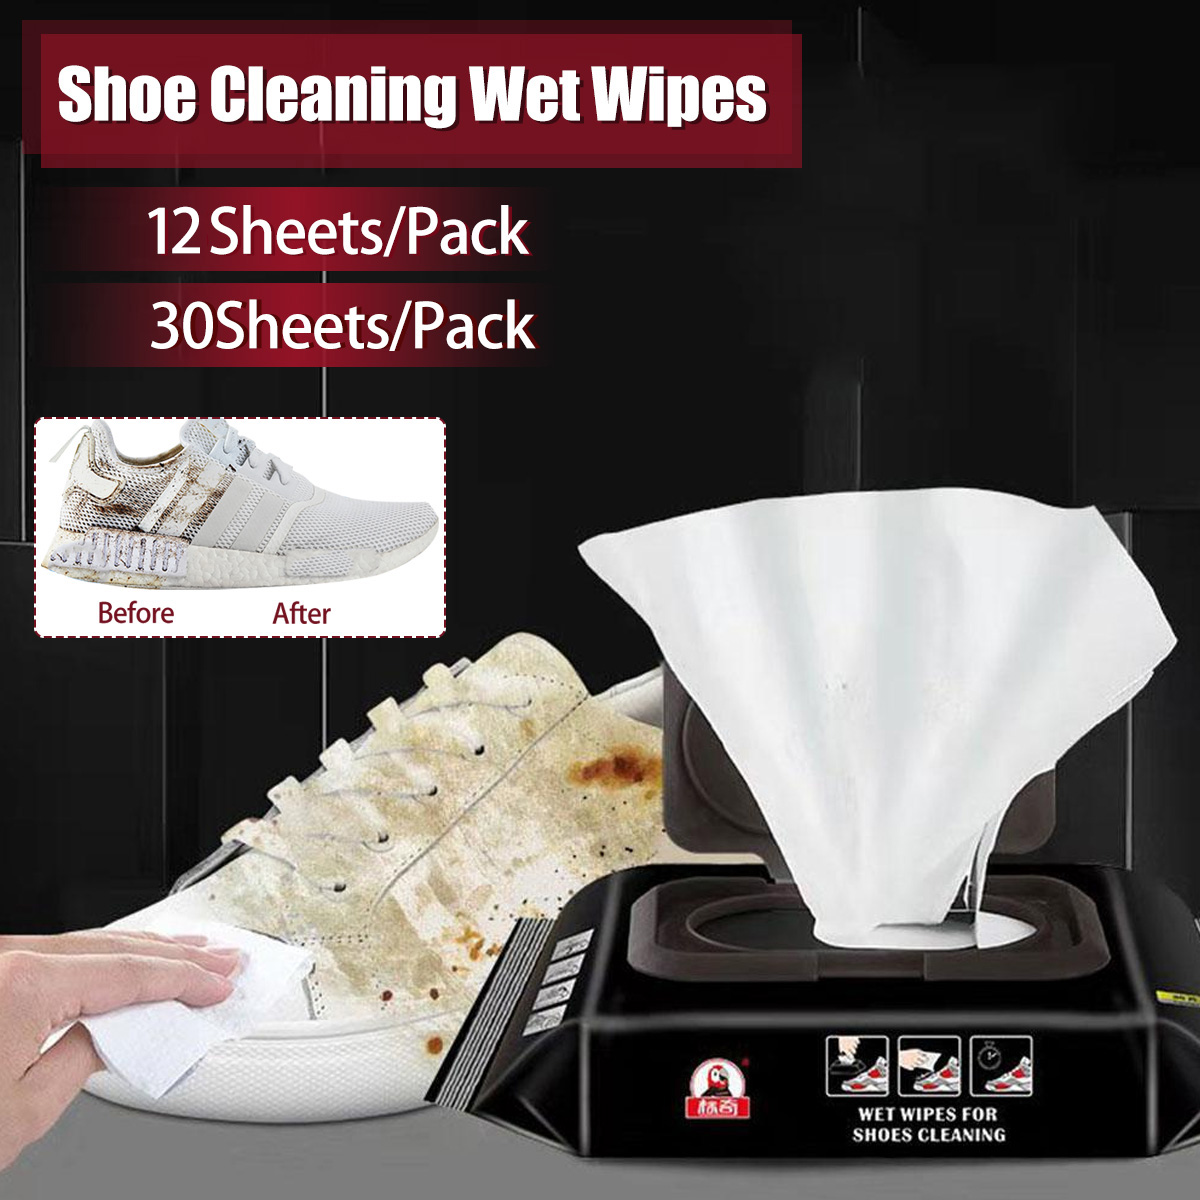 30 Sheets Disposable Shoe Sneaker Cleaning Wet Wipes White Shoes Artifact Travel Portable Sneakers Cleaning Quick Wet Wipes